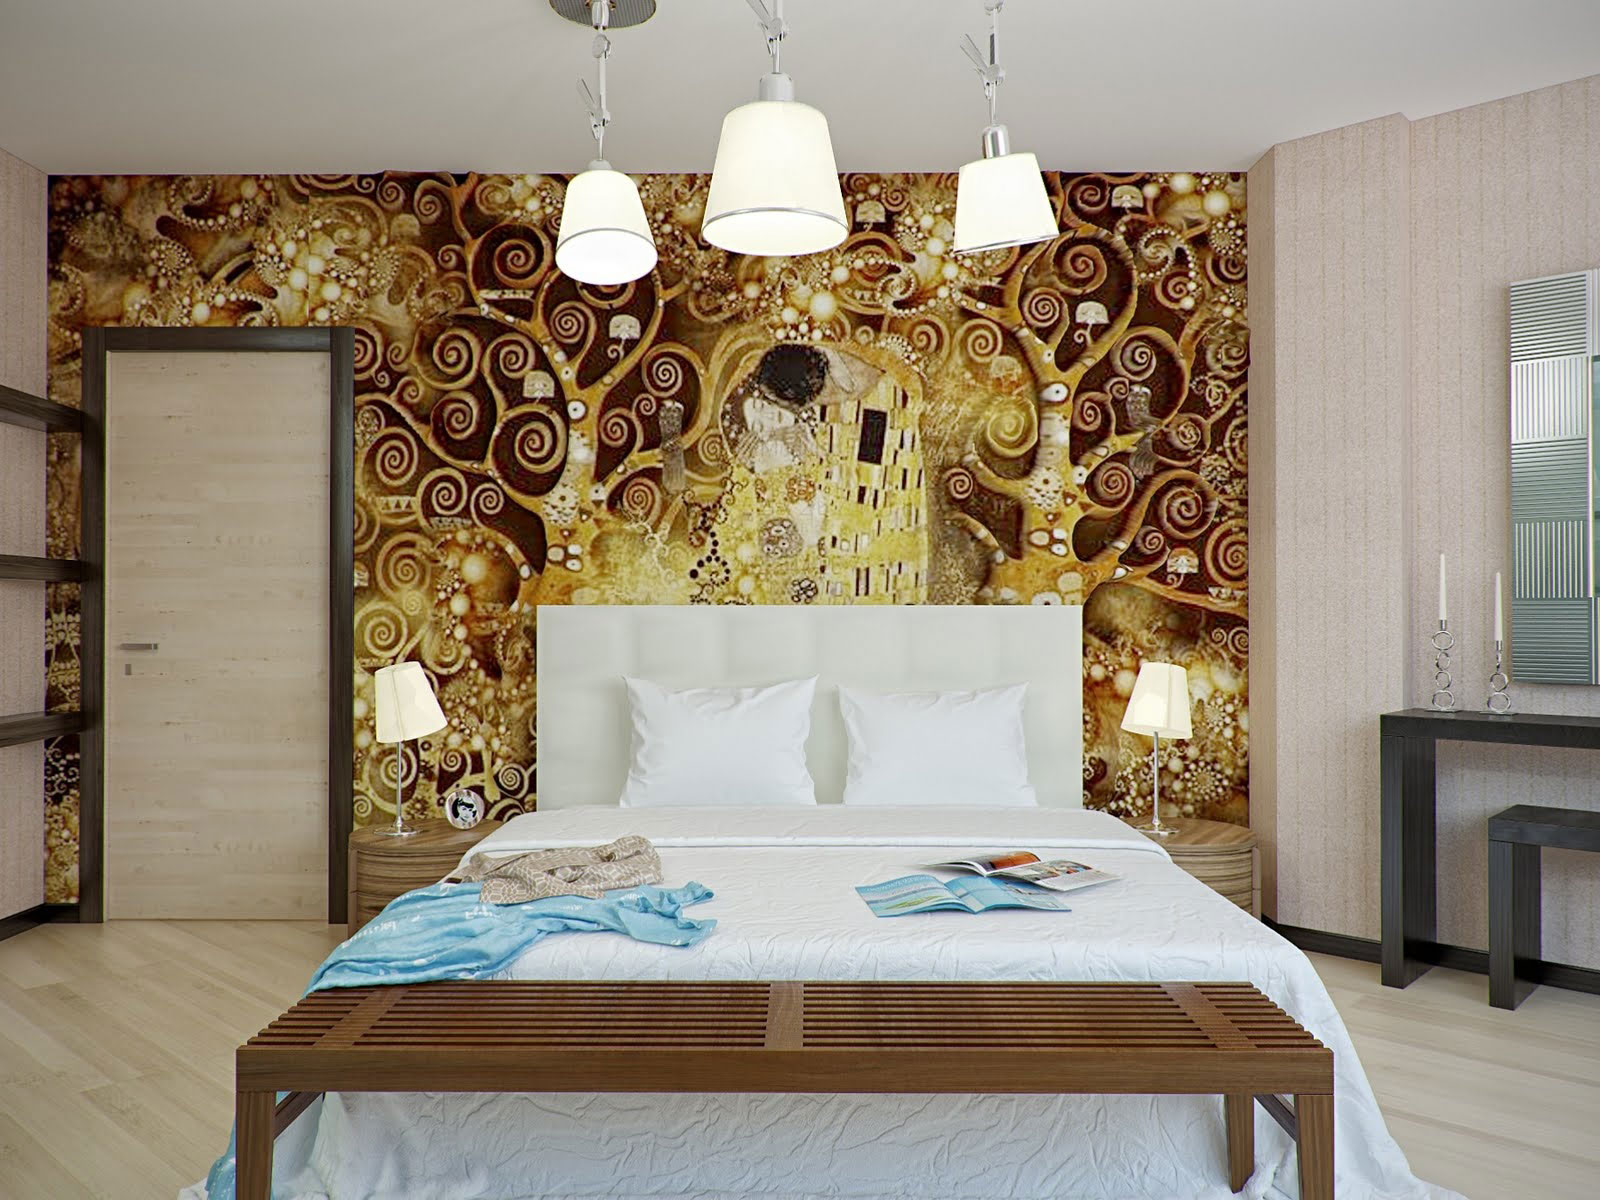 Mural Lamp Bed Bedroom Pillows Mirror Table Part 43